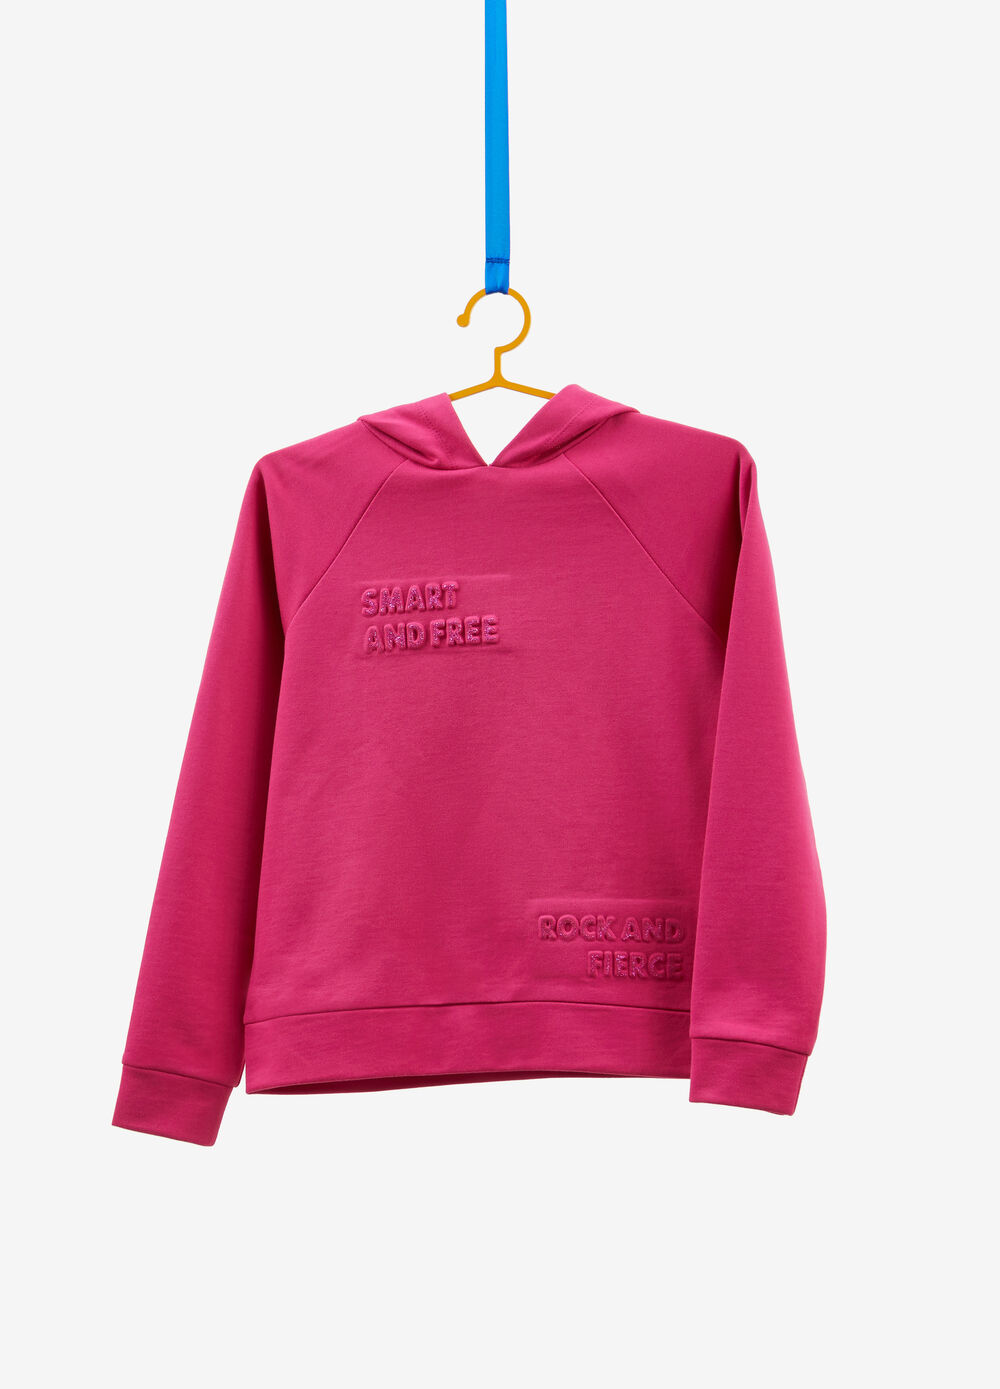 Sweatshirt in 100% cotton with flocked print